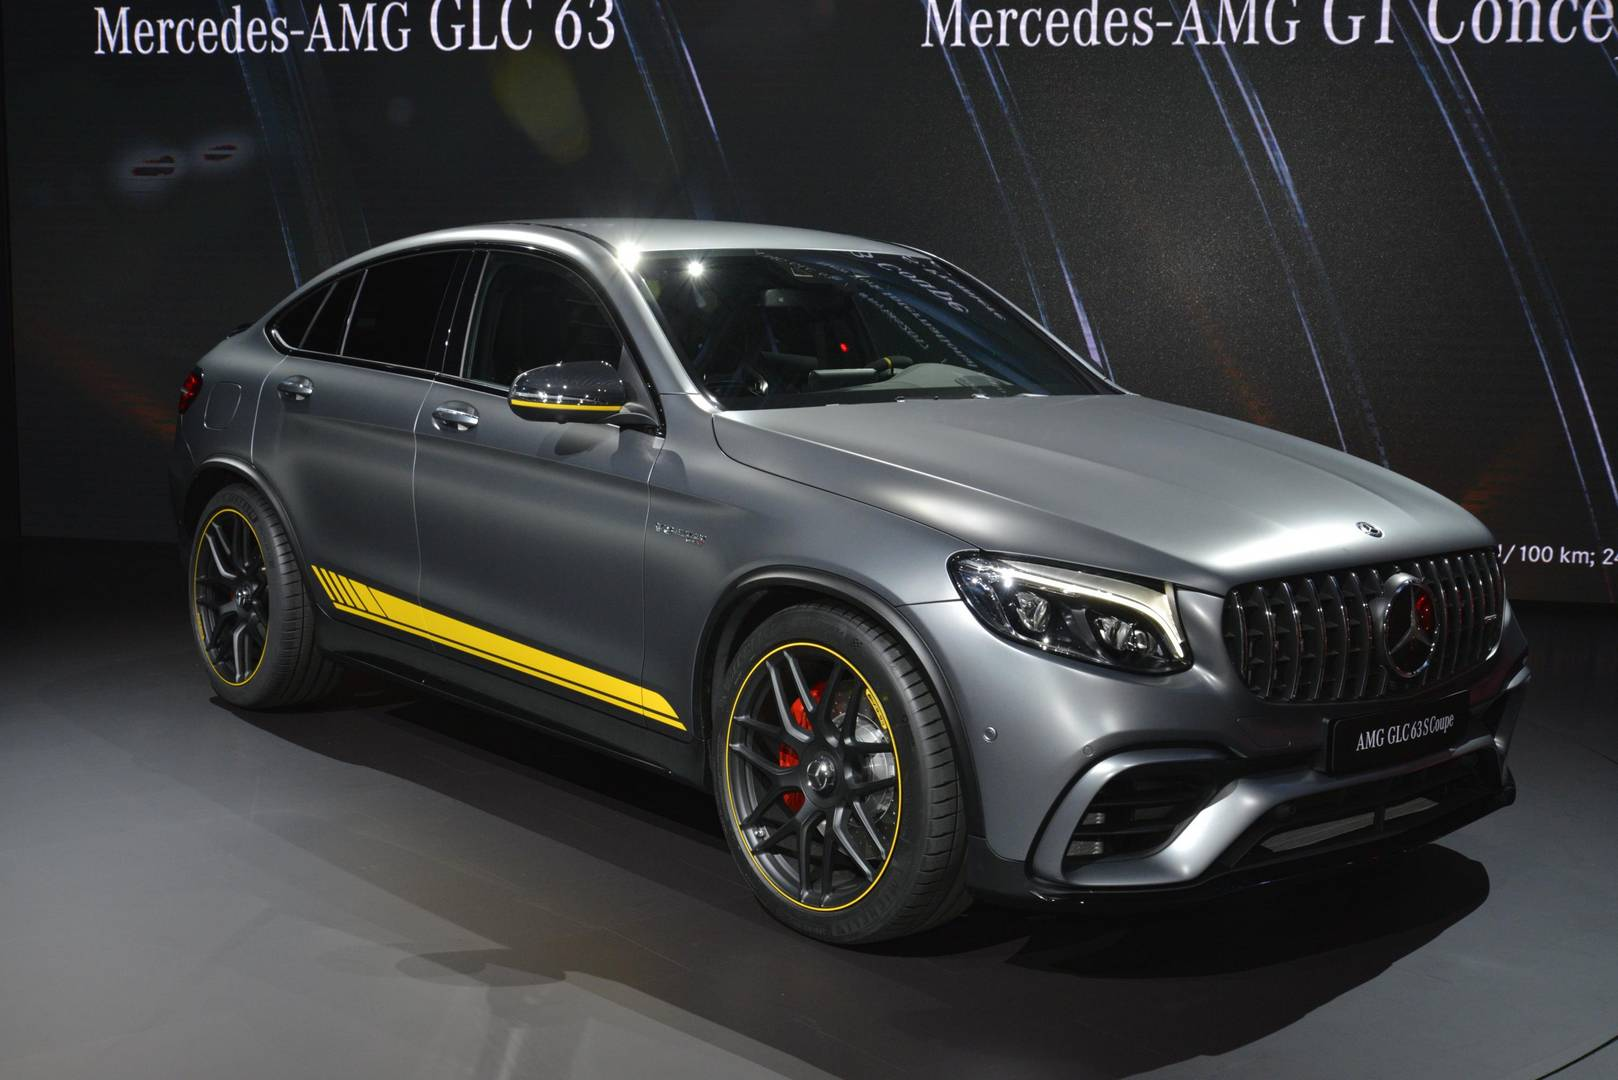 new york 2017 mercedes amg glc 63 gtspirit. Black Bedroom Furniture Sets. Home Design Ideas